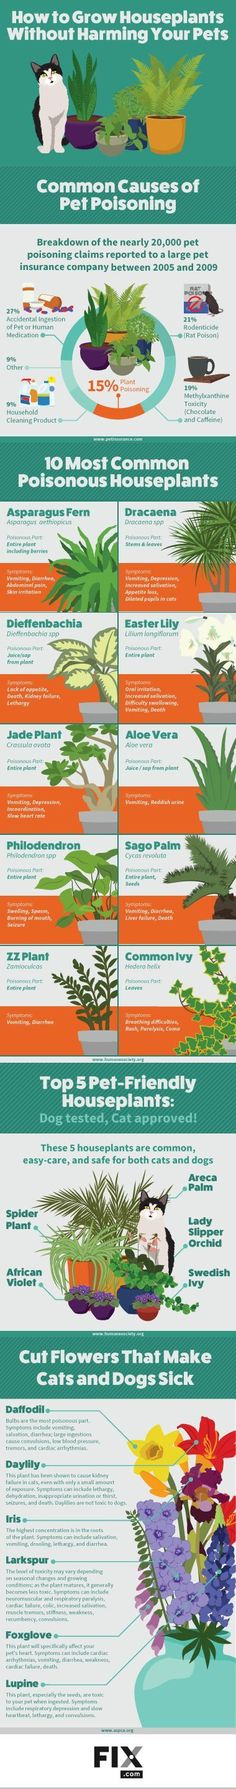 Houseplants Safe for Cats and Dogs | http://Fix.com